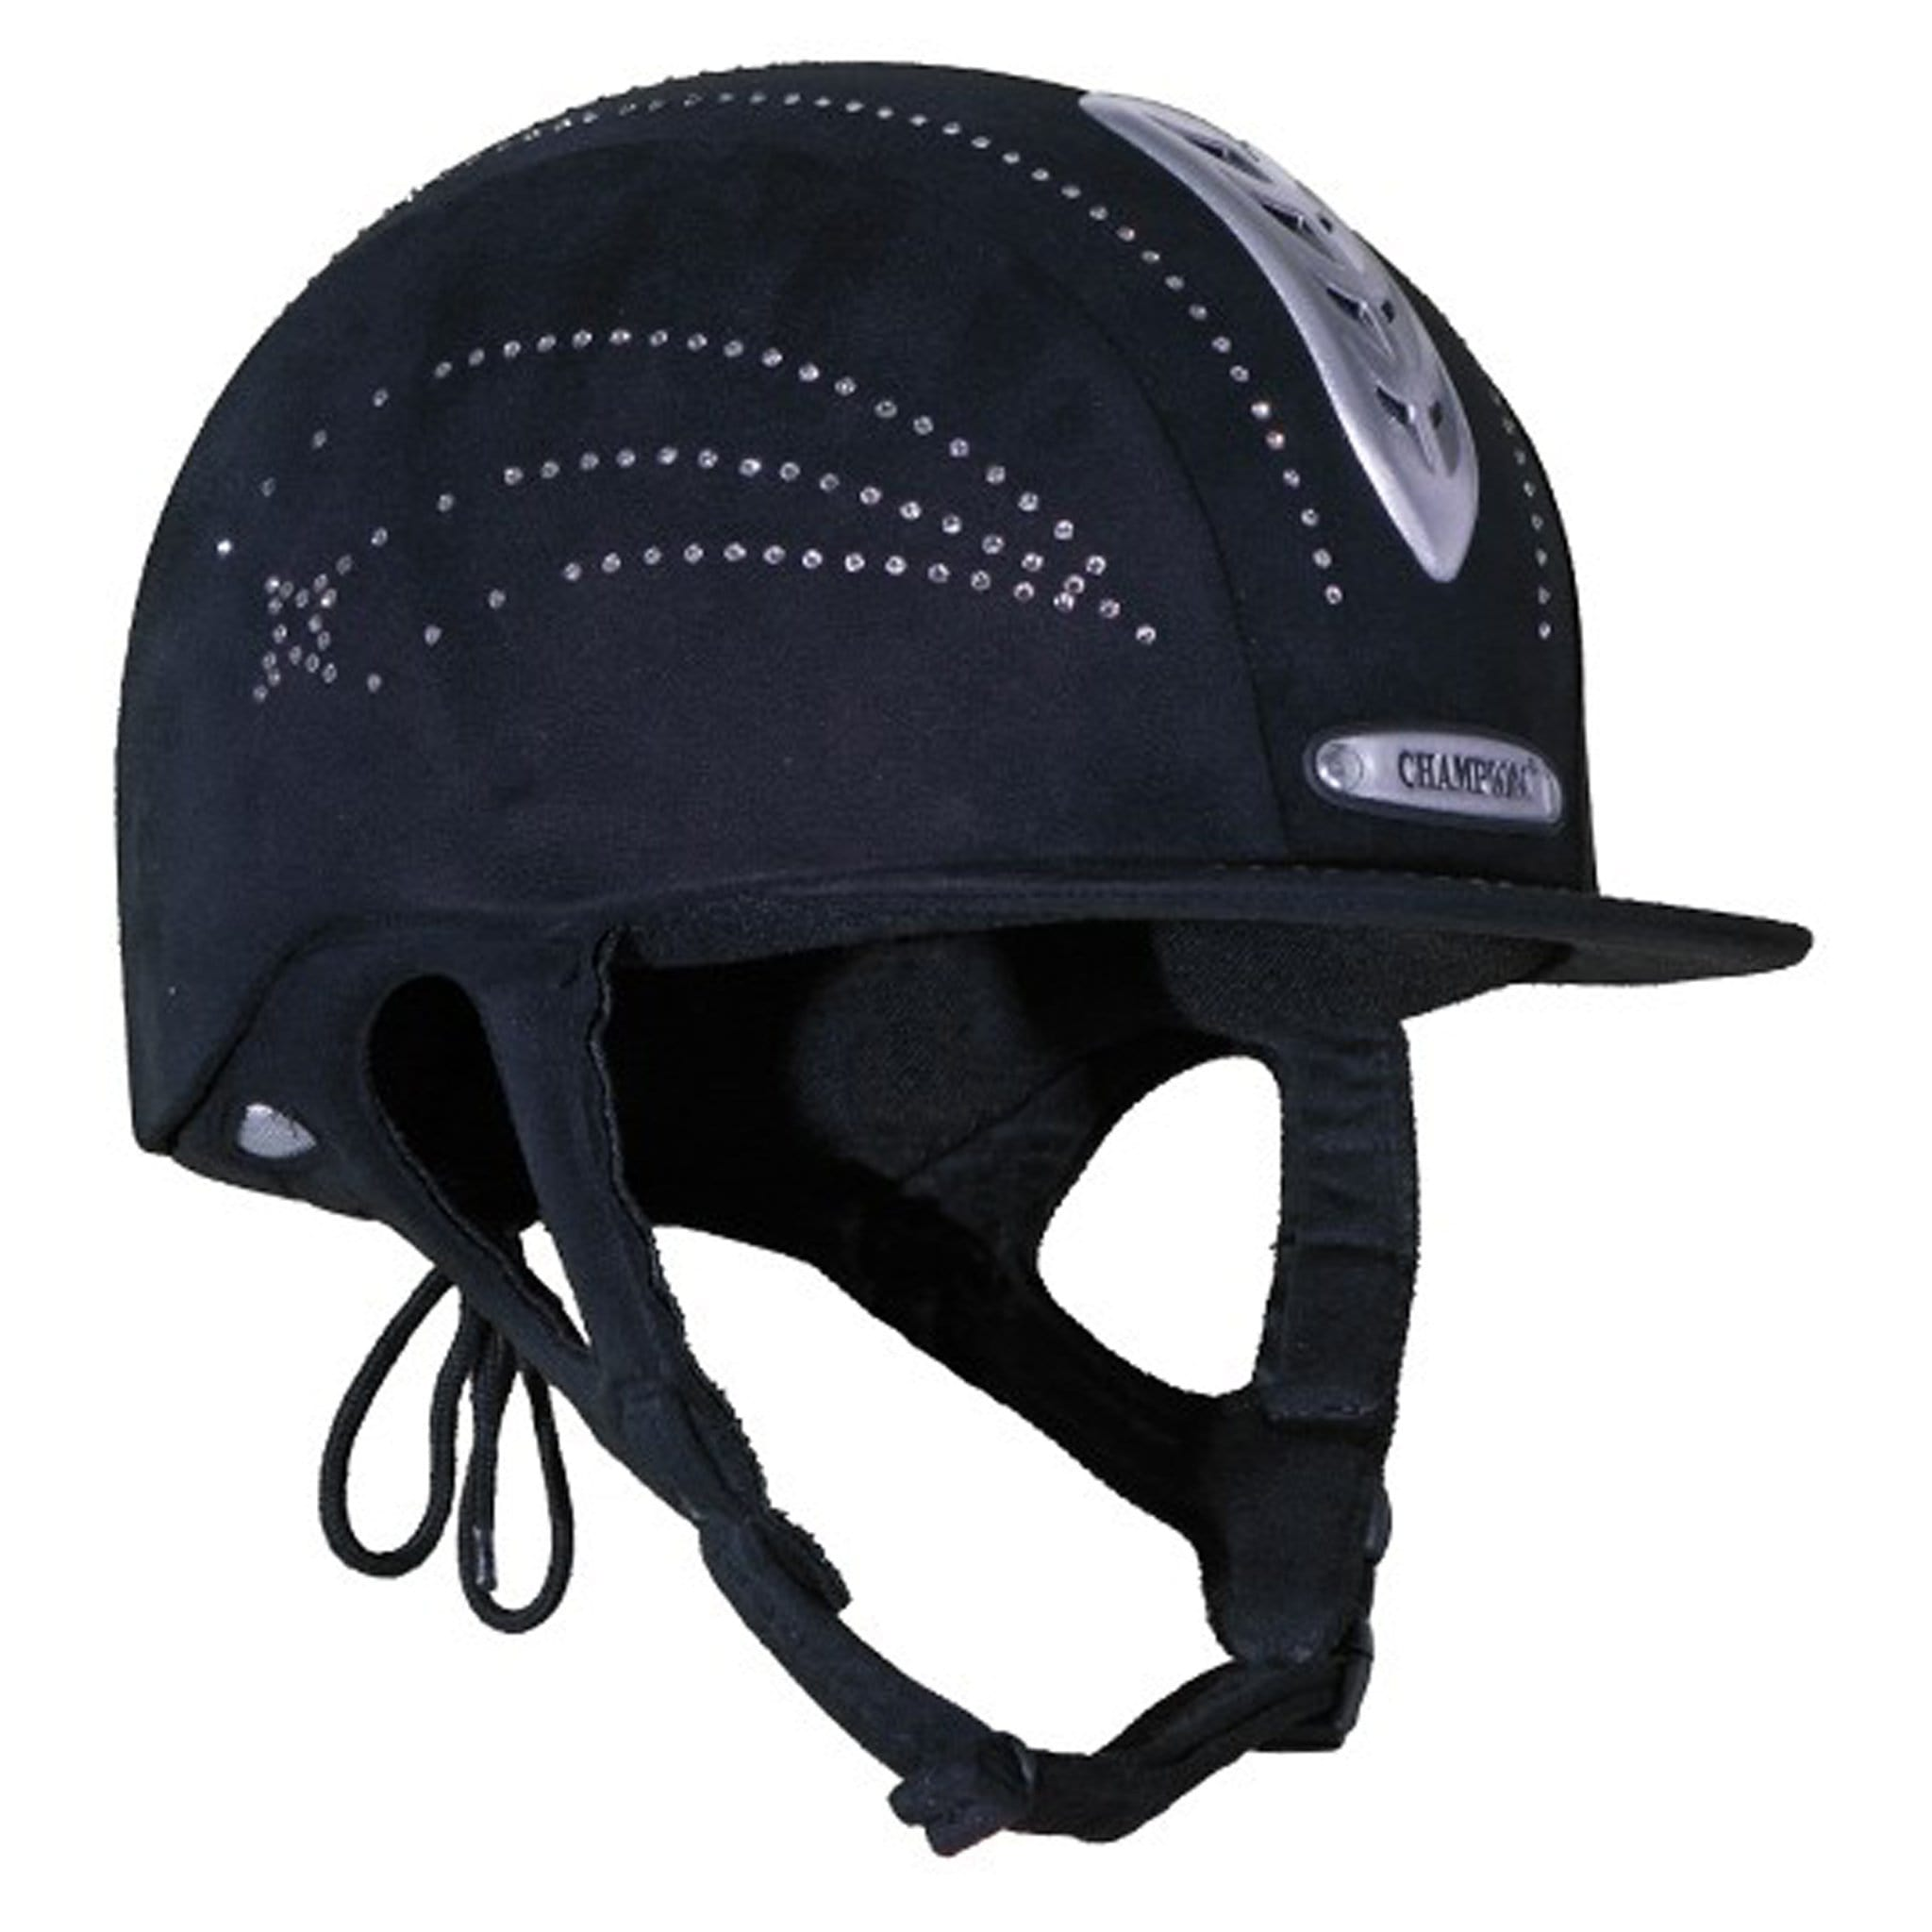 Champion Junior X-Air Star Plus Riding Hat Right Side View JNRXAIRSTARPLUS.